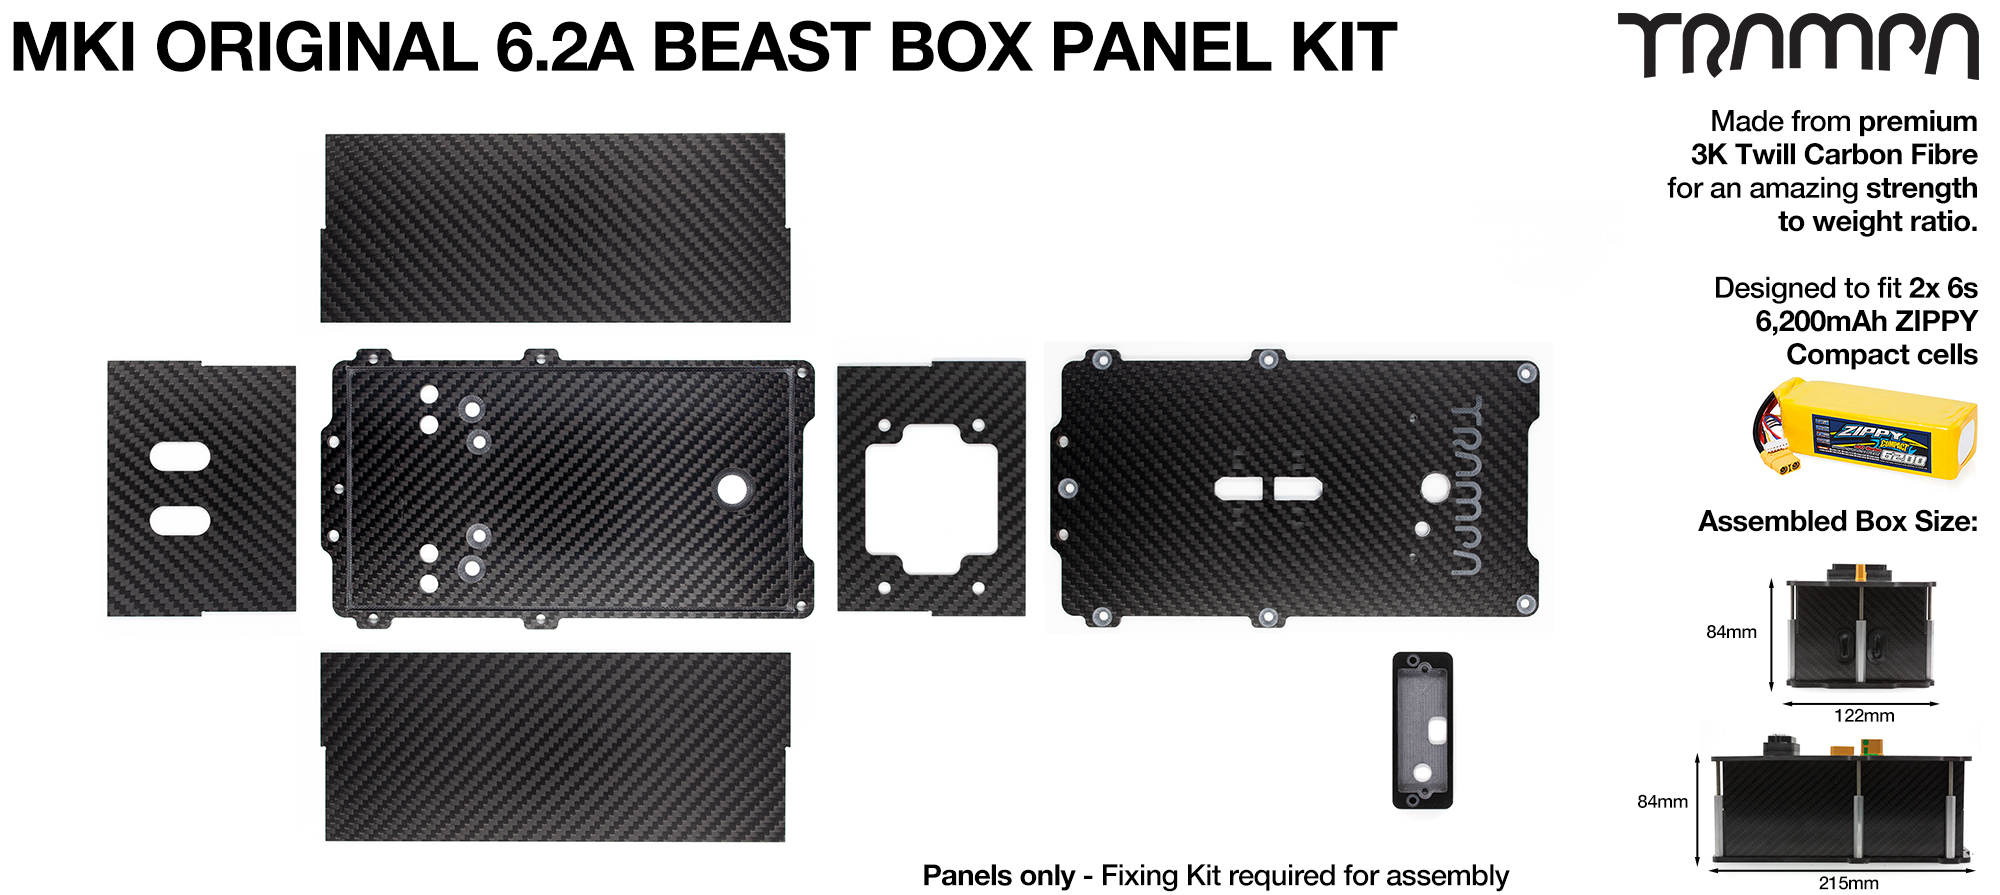 BEAST Box Carbon Fibre Panel kit with integrated LED & NRF Housing - Fits 2x 6200 Zippy compact